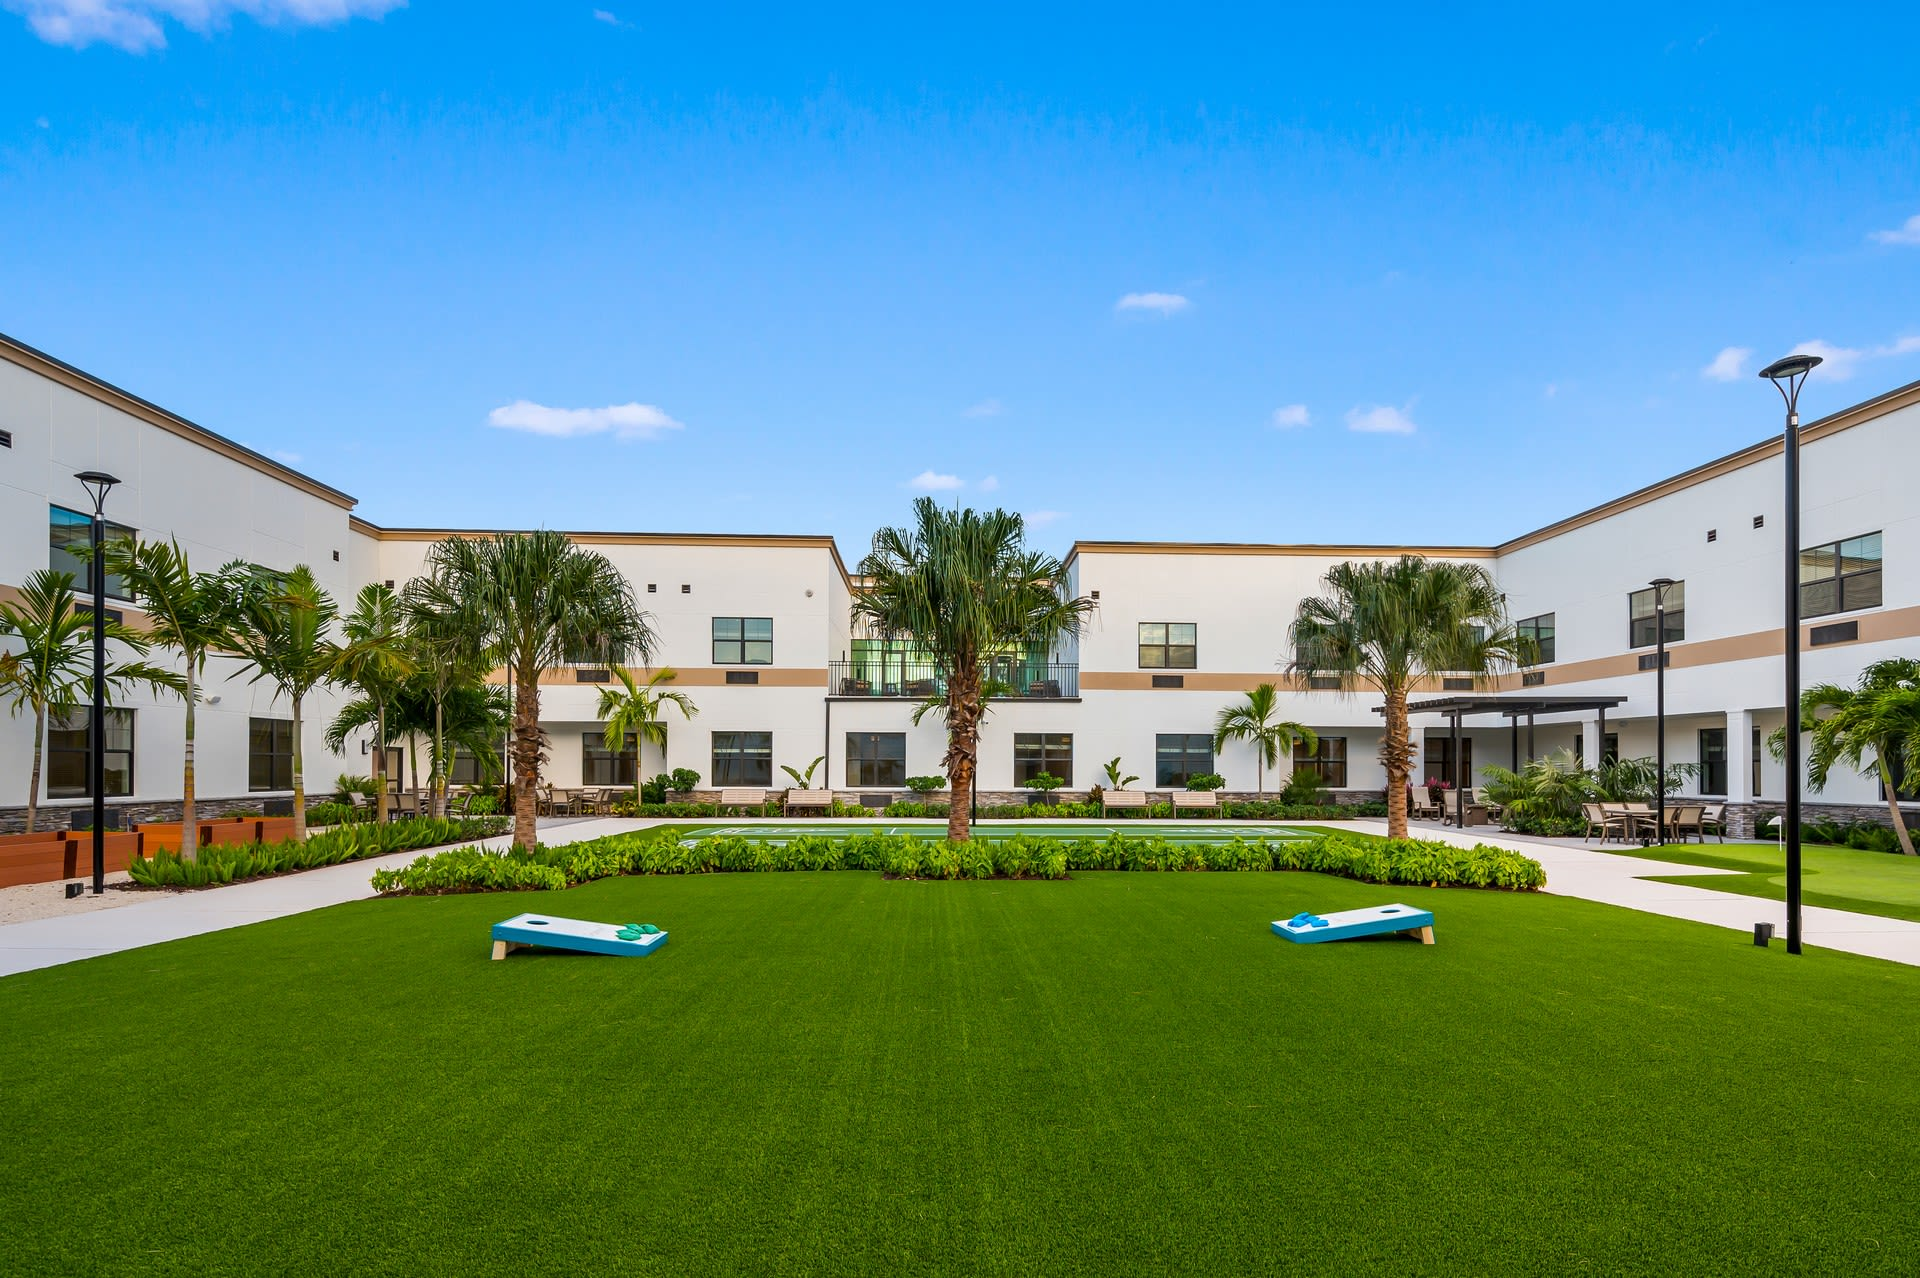 Courtyard at Inspired Living Royal Palm Beach in Royal Palm Beach, Florida